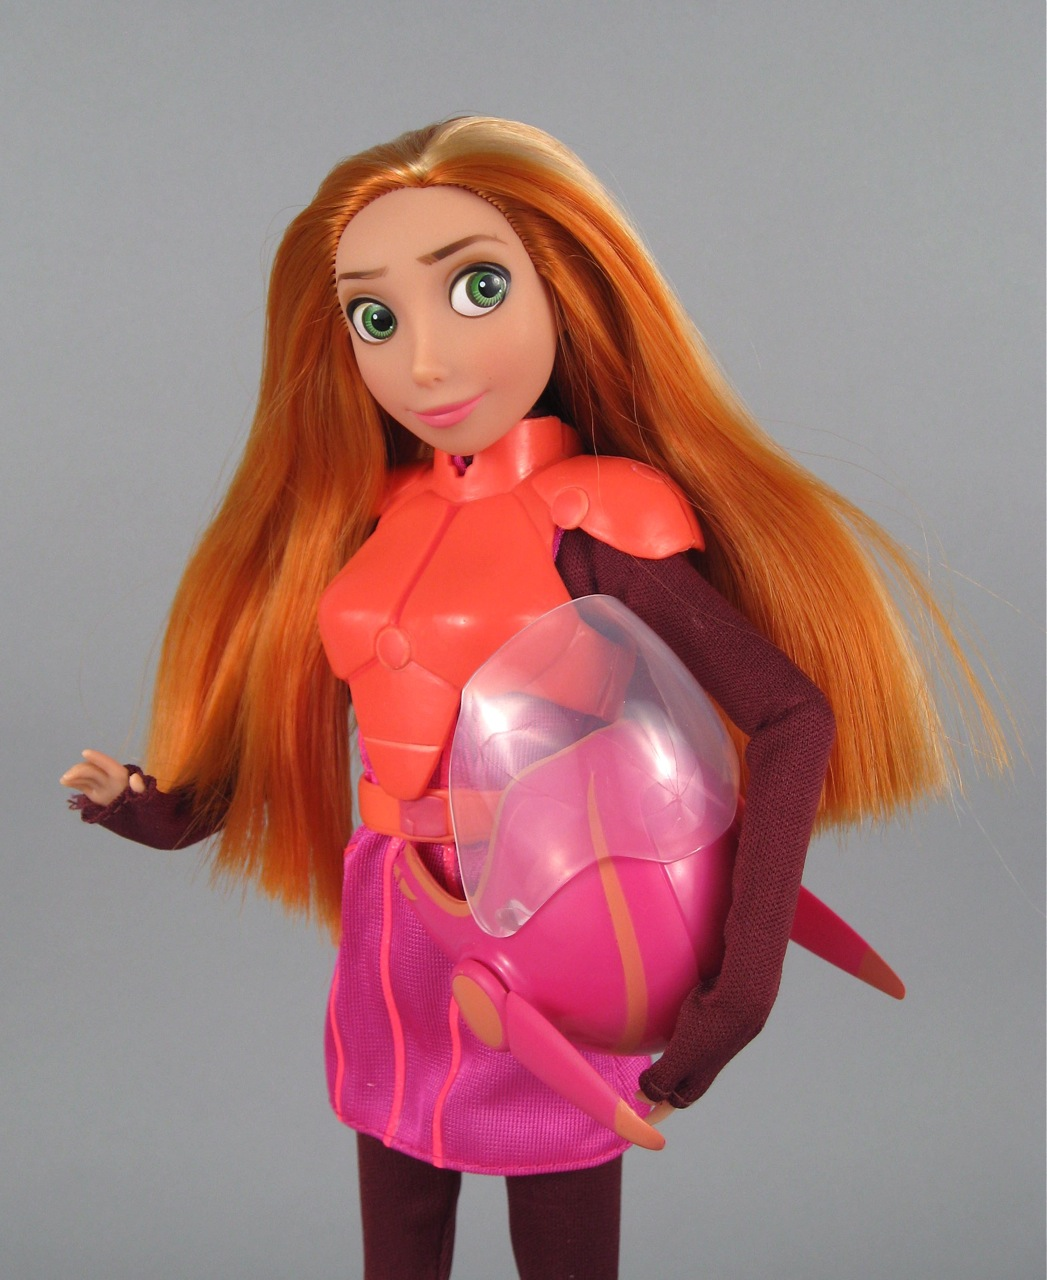 Big Hero 6 Honey Lemon doll